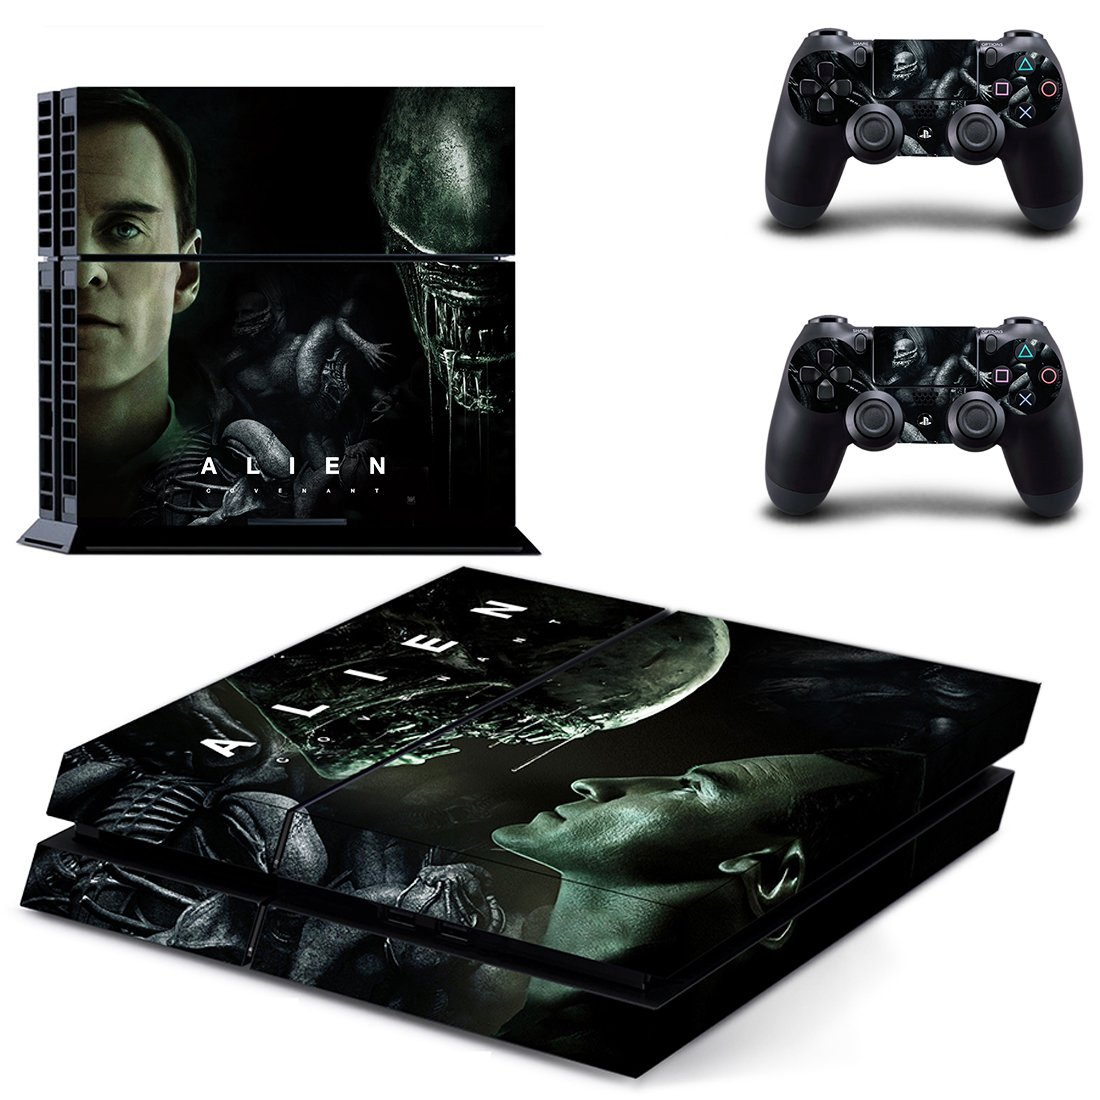 Alien covenant skin decal for ps4 console and controllers